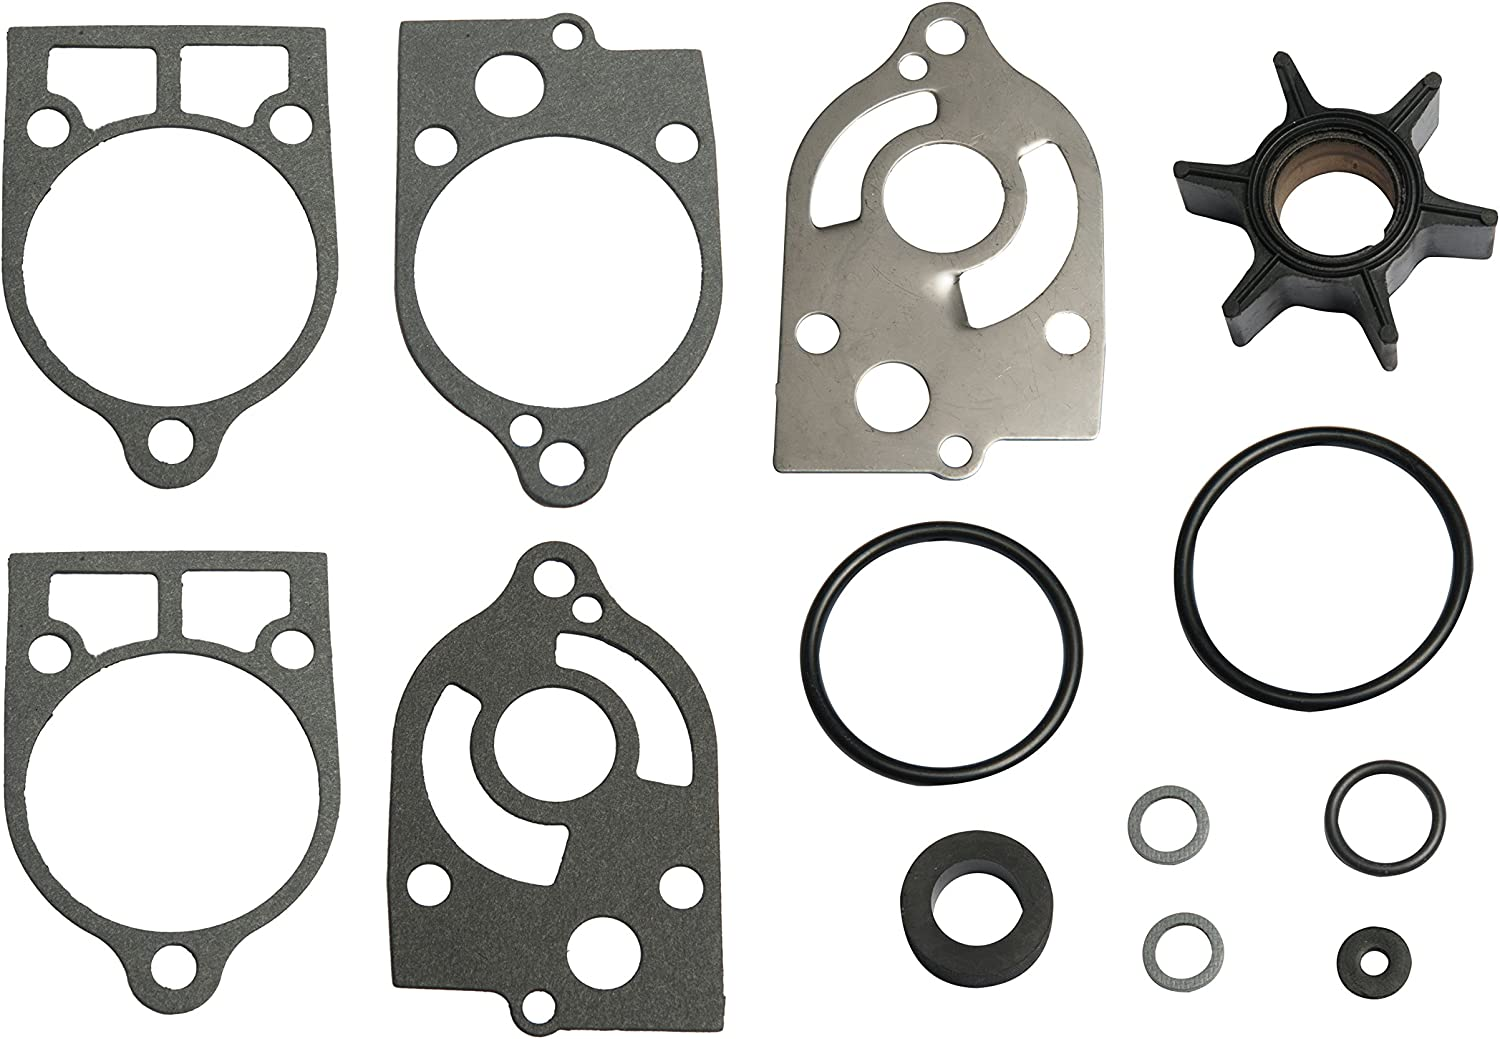 Sierra International 18-3207 Marine Impeller Repair Kit for Mercury/Mariner Outboard Motor